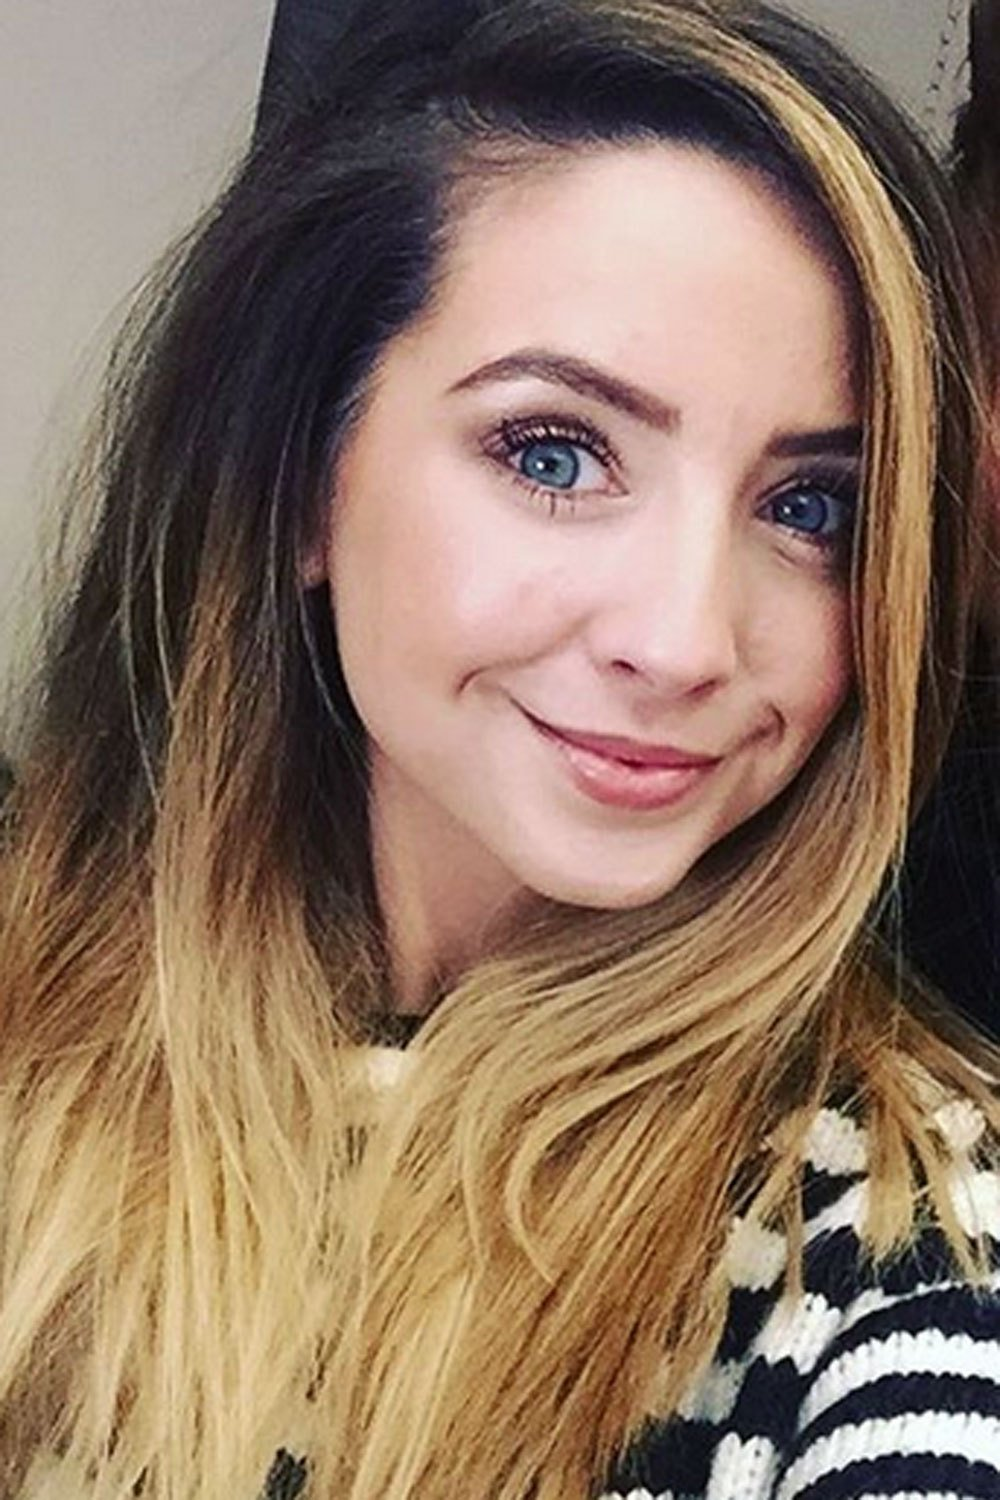 The Best Ombre Hair The Hottest Celebrity Styles Look Pictures